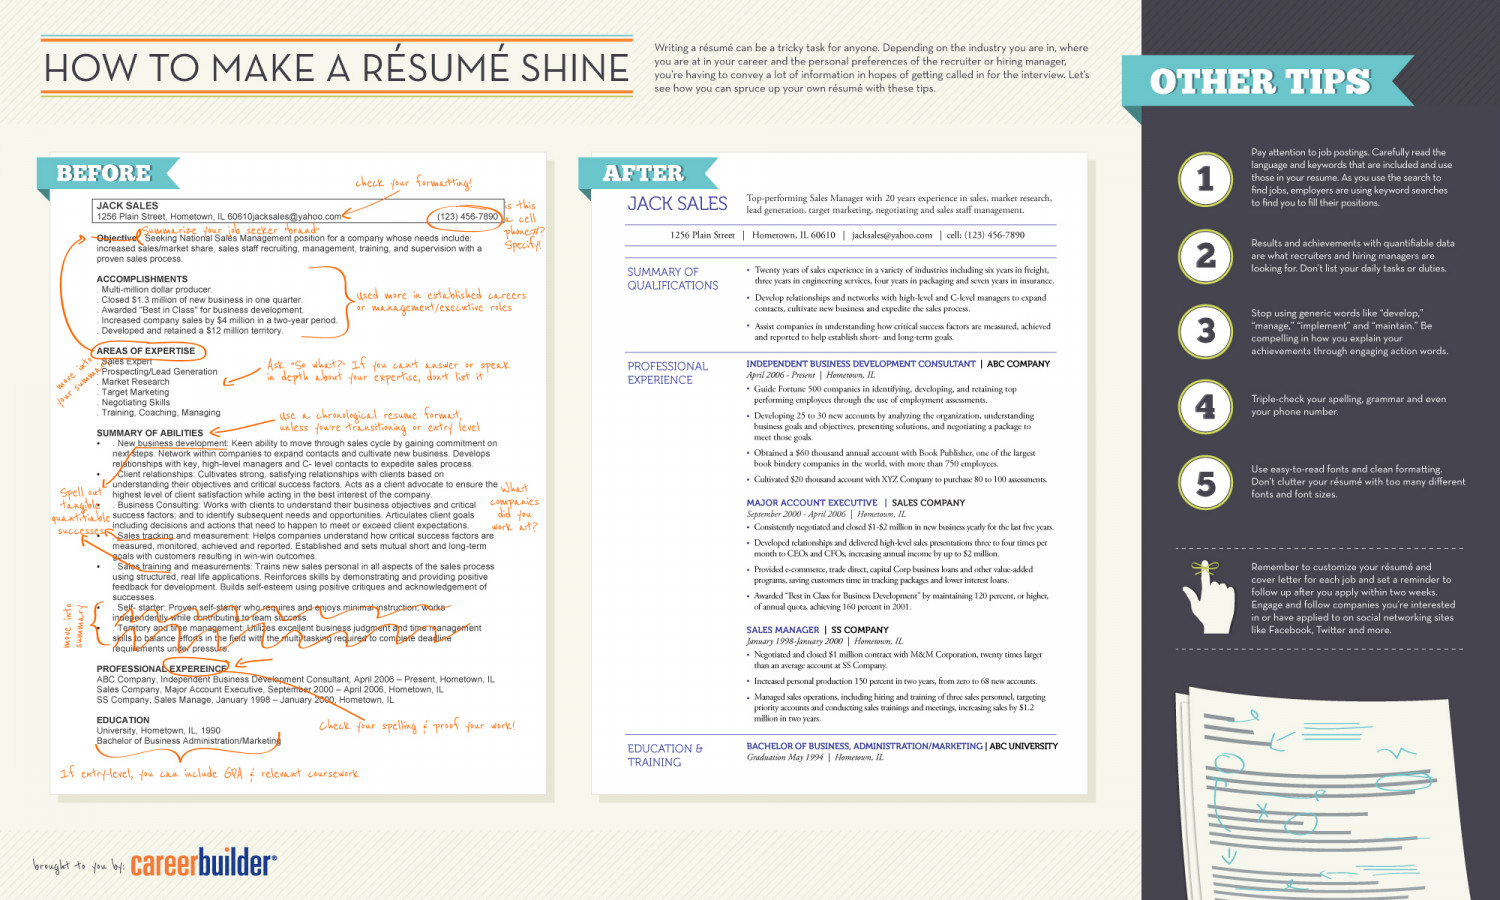 how to make a rsum shine infographic - Career Builder Resumes